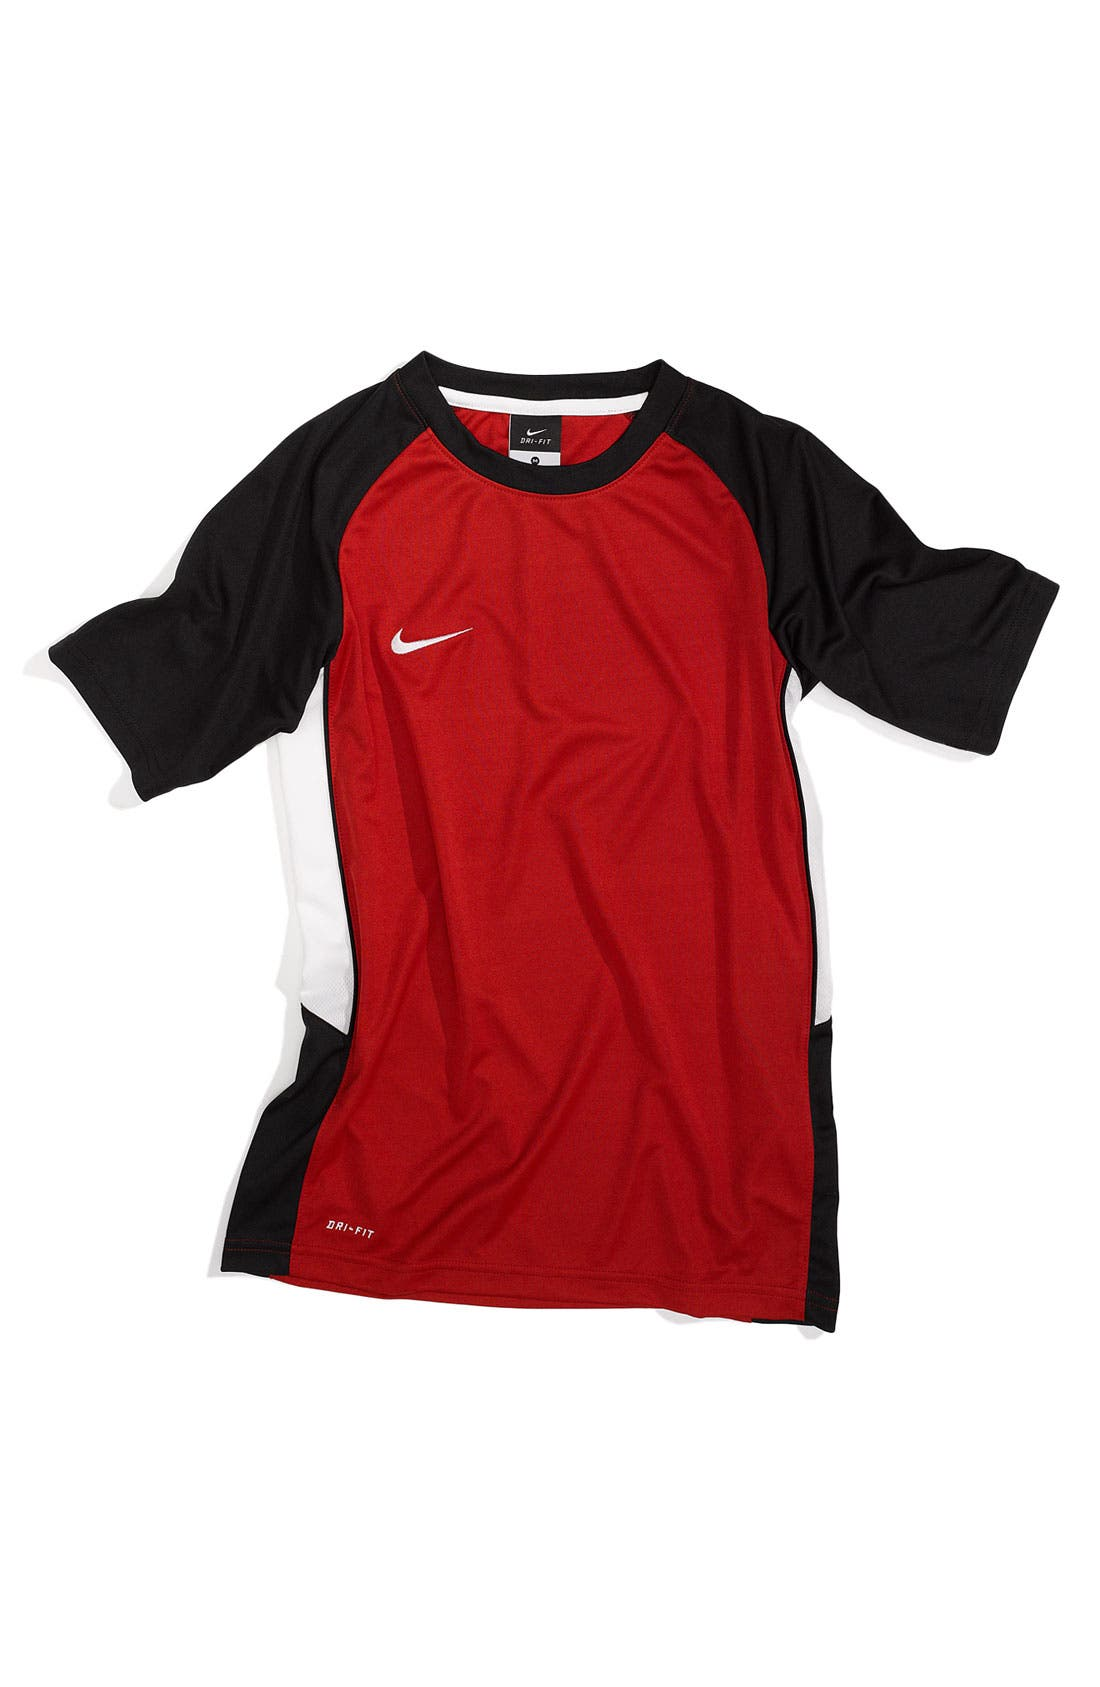 Alternate Image 1 Selected - Nike 'Dri-FIT - Team' Training Top (Big Boys)